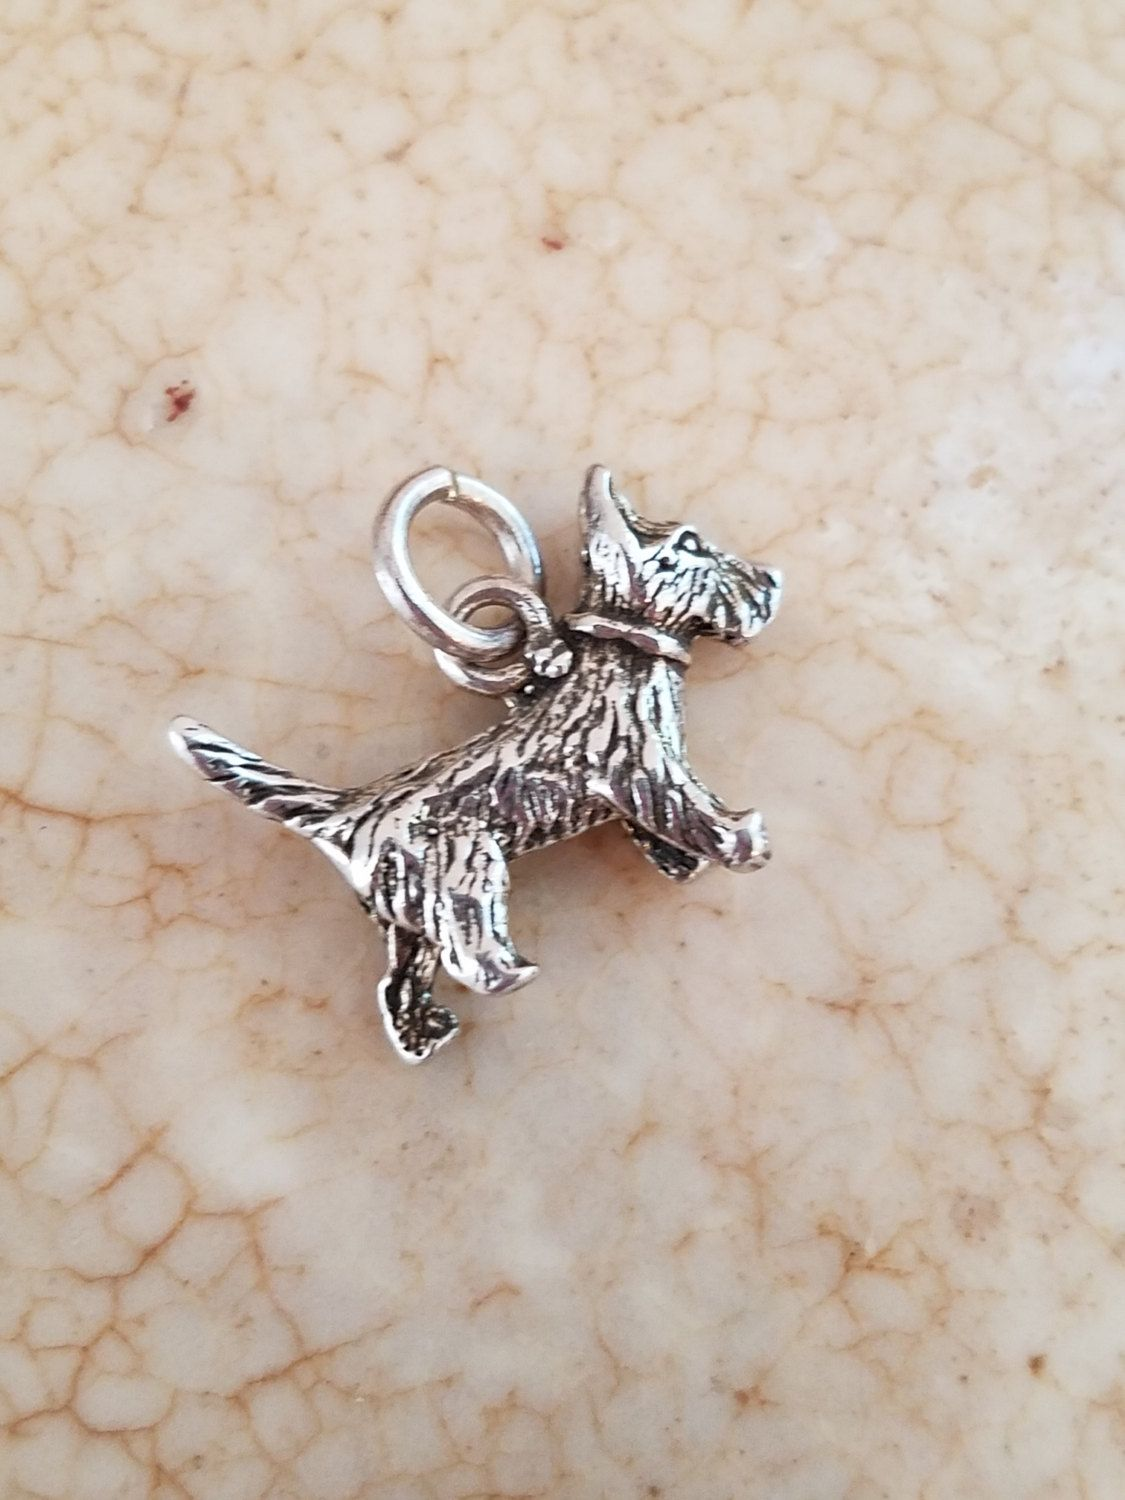 f538e783504 Sterling silver dog charm Schnauzer charm pendant -LR1394a by Andiesvintage  on Etsy